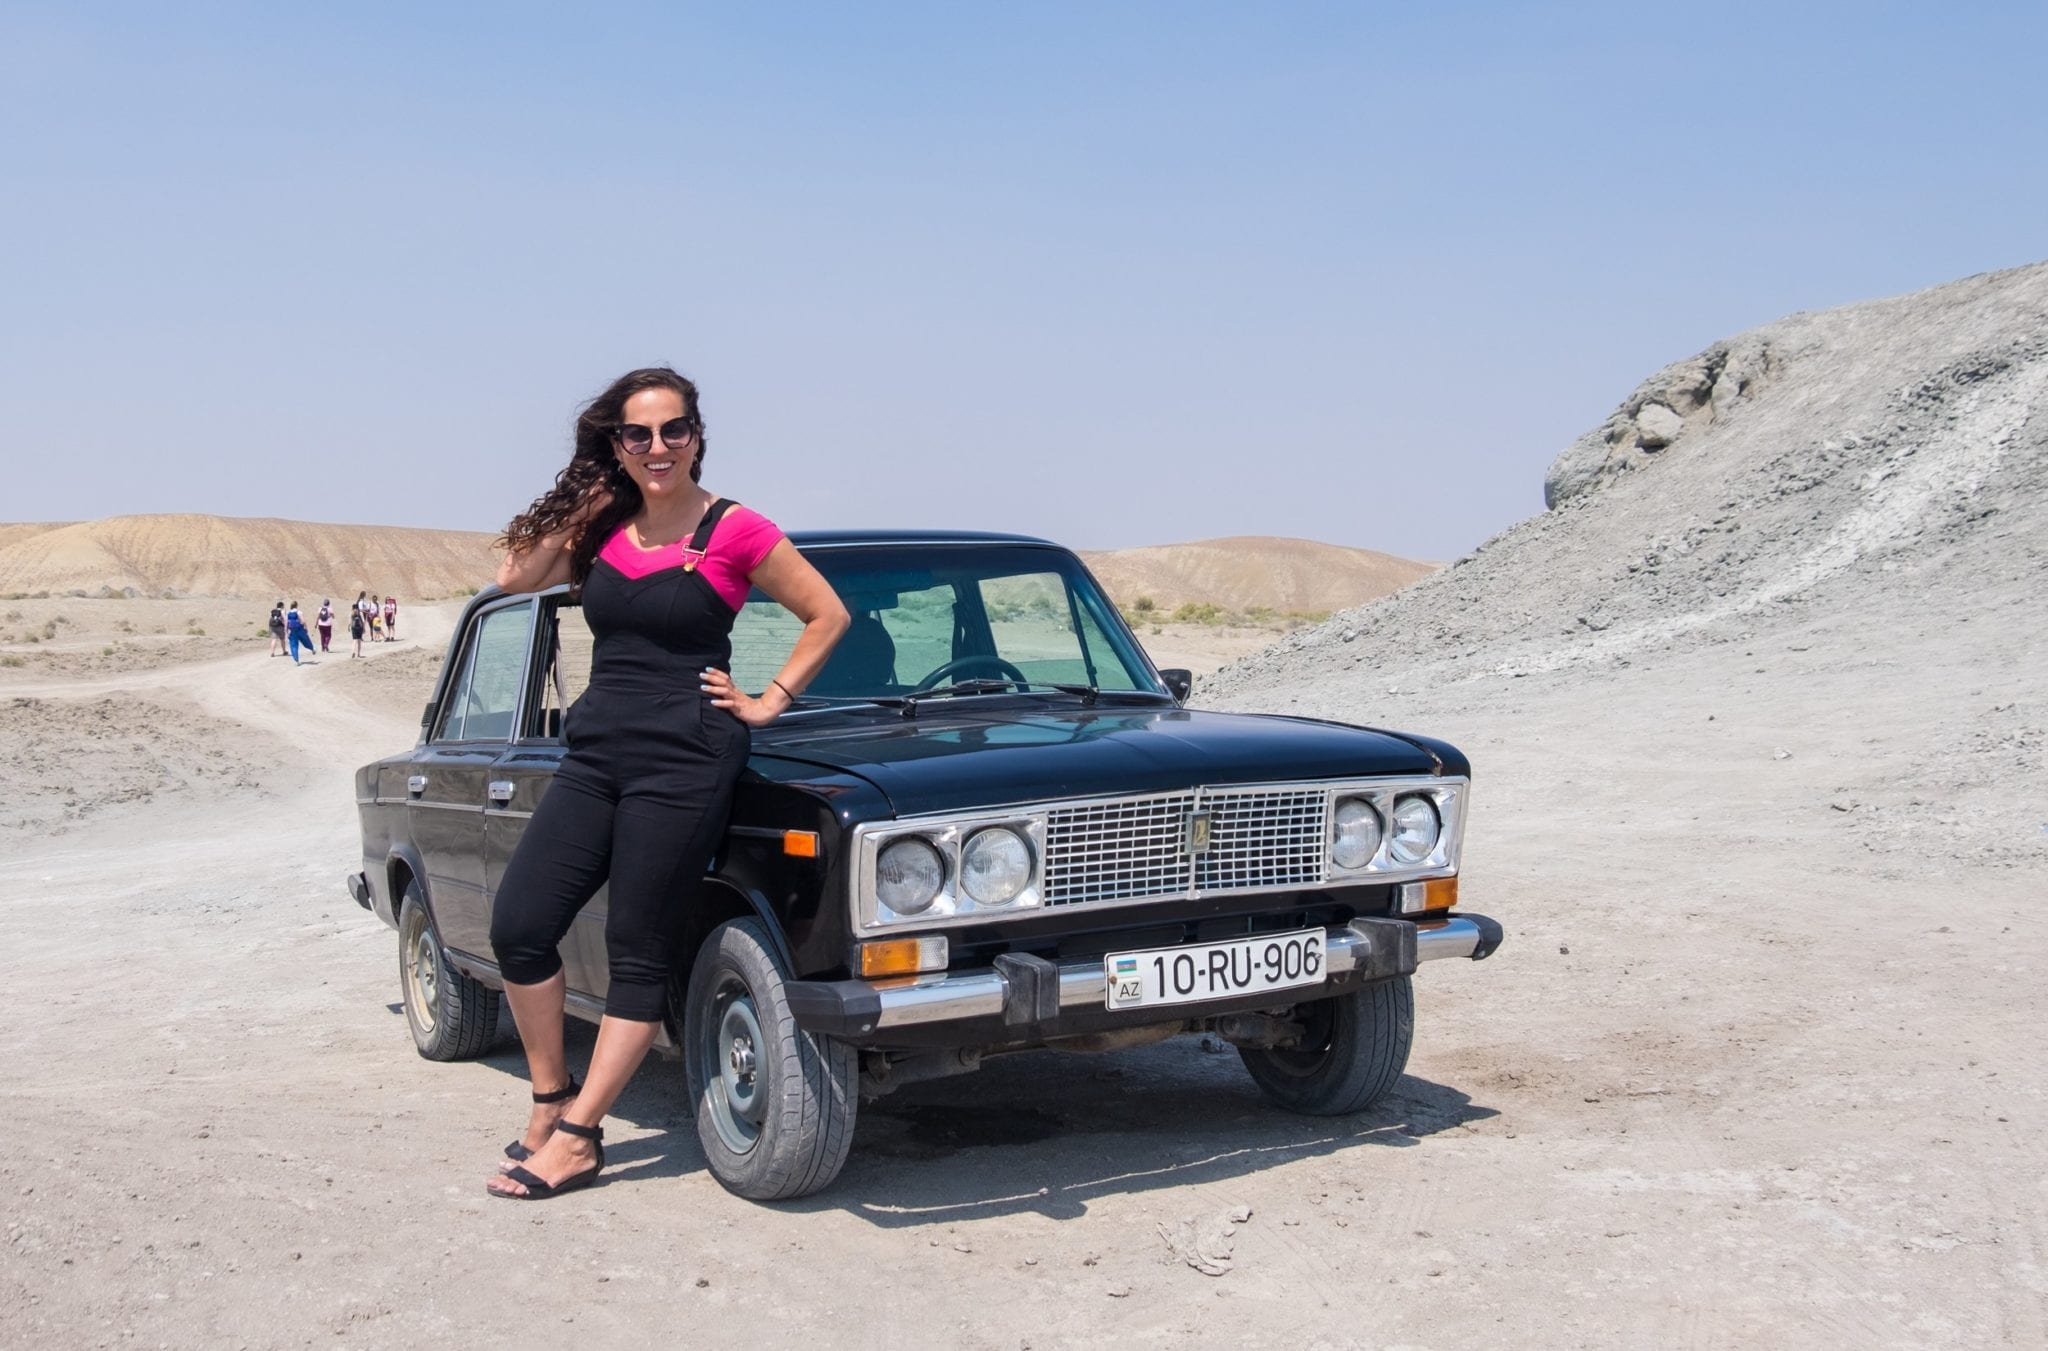 Kate wears overalls and a pink shirt and poses with her hand behind her neck while sitting on a Soviet-era Russian Lada car. She's in the middle of the gray-brown dessert beneath a pale blue sky.